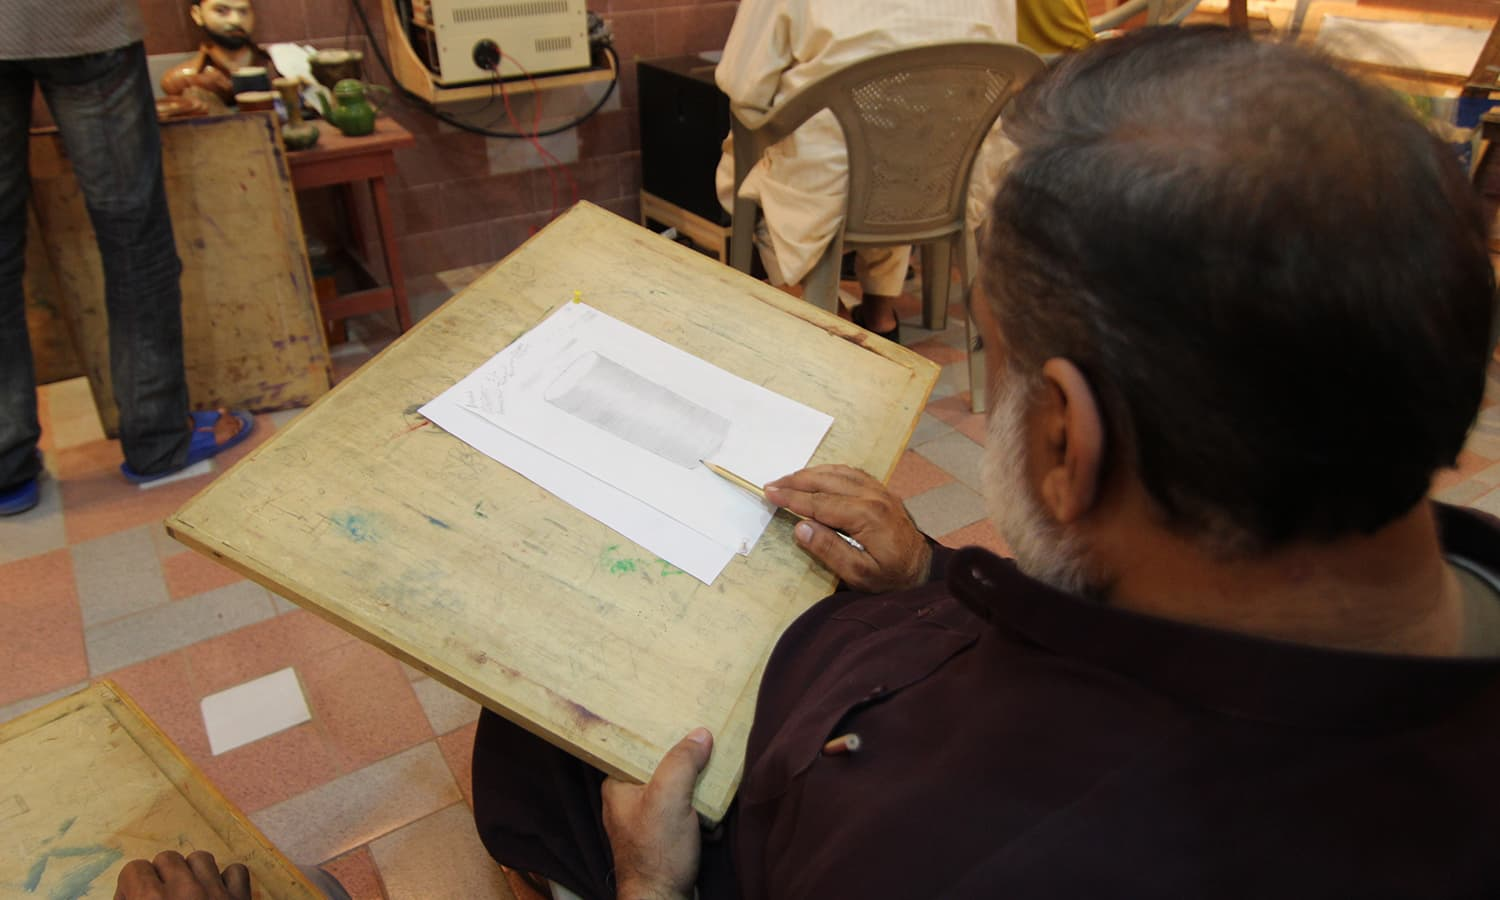 A student sketches on his canvas.